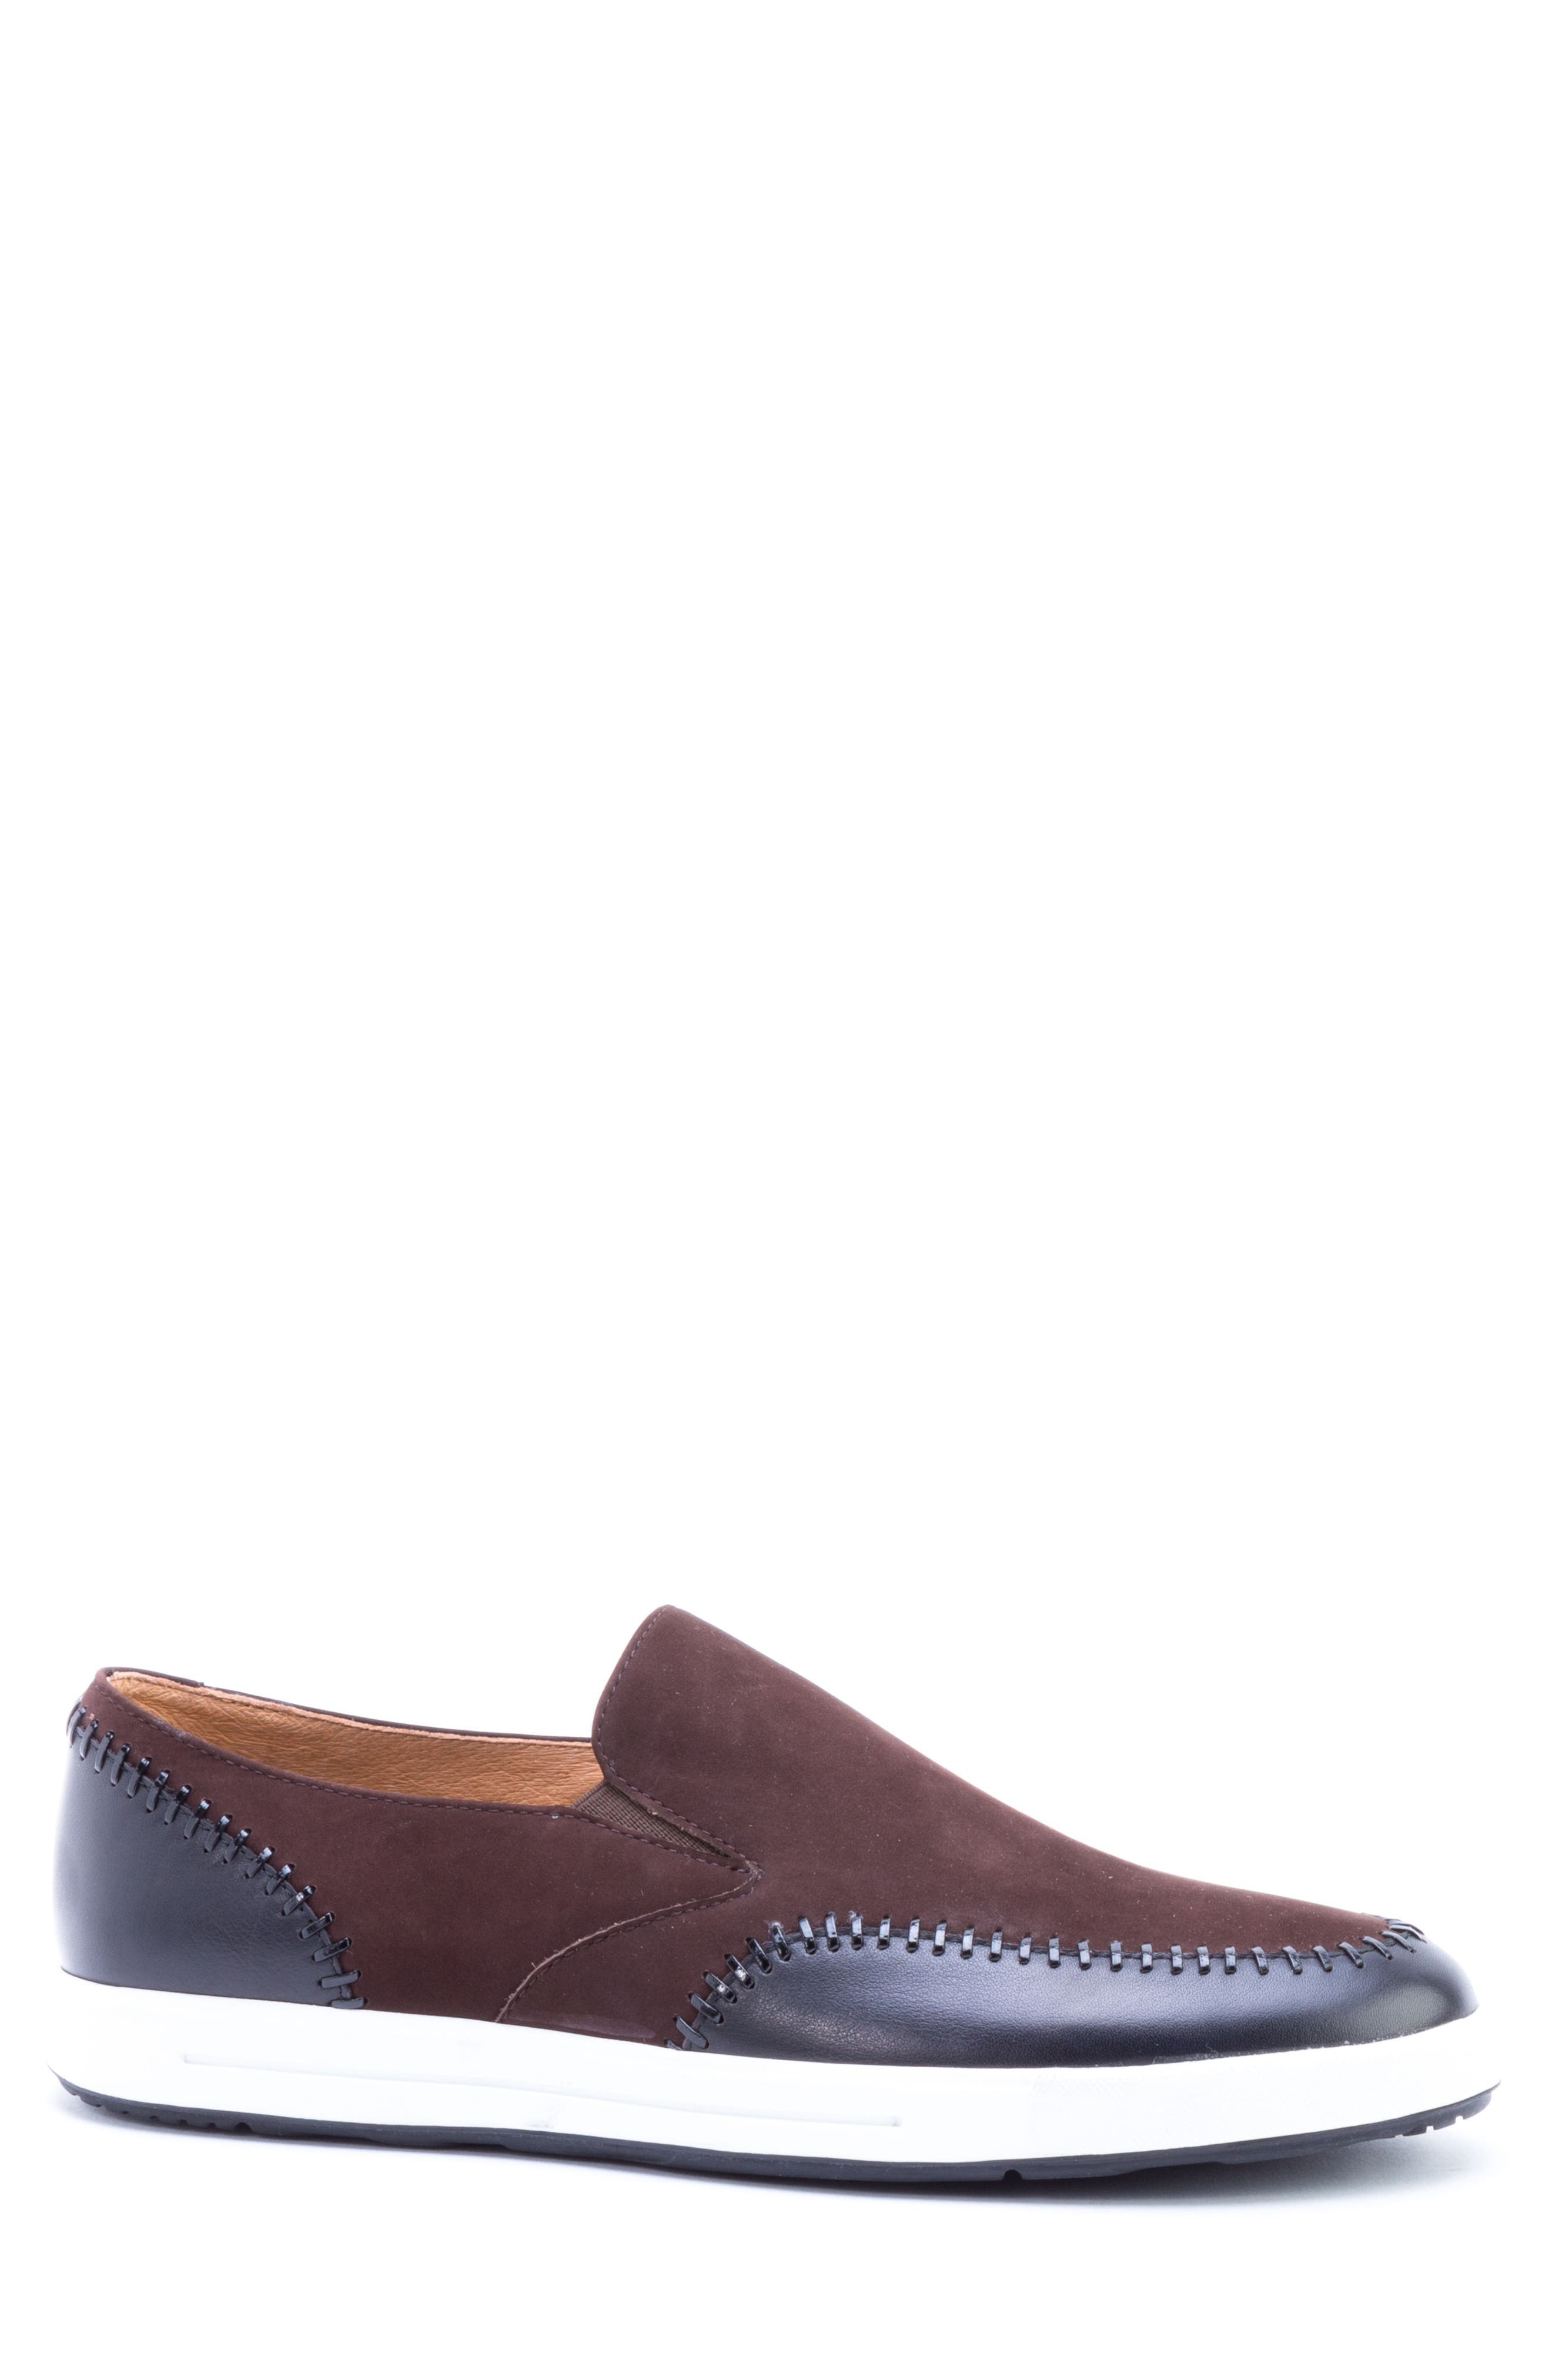 Caravaggio Whipstitched Slip-On Sneaker,                             Alternate thumbnail 3, color,                             BROWN SUEDE/ LEATHER